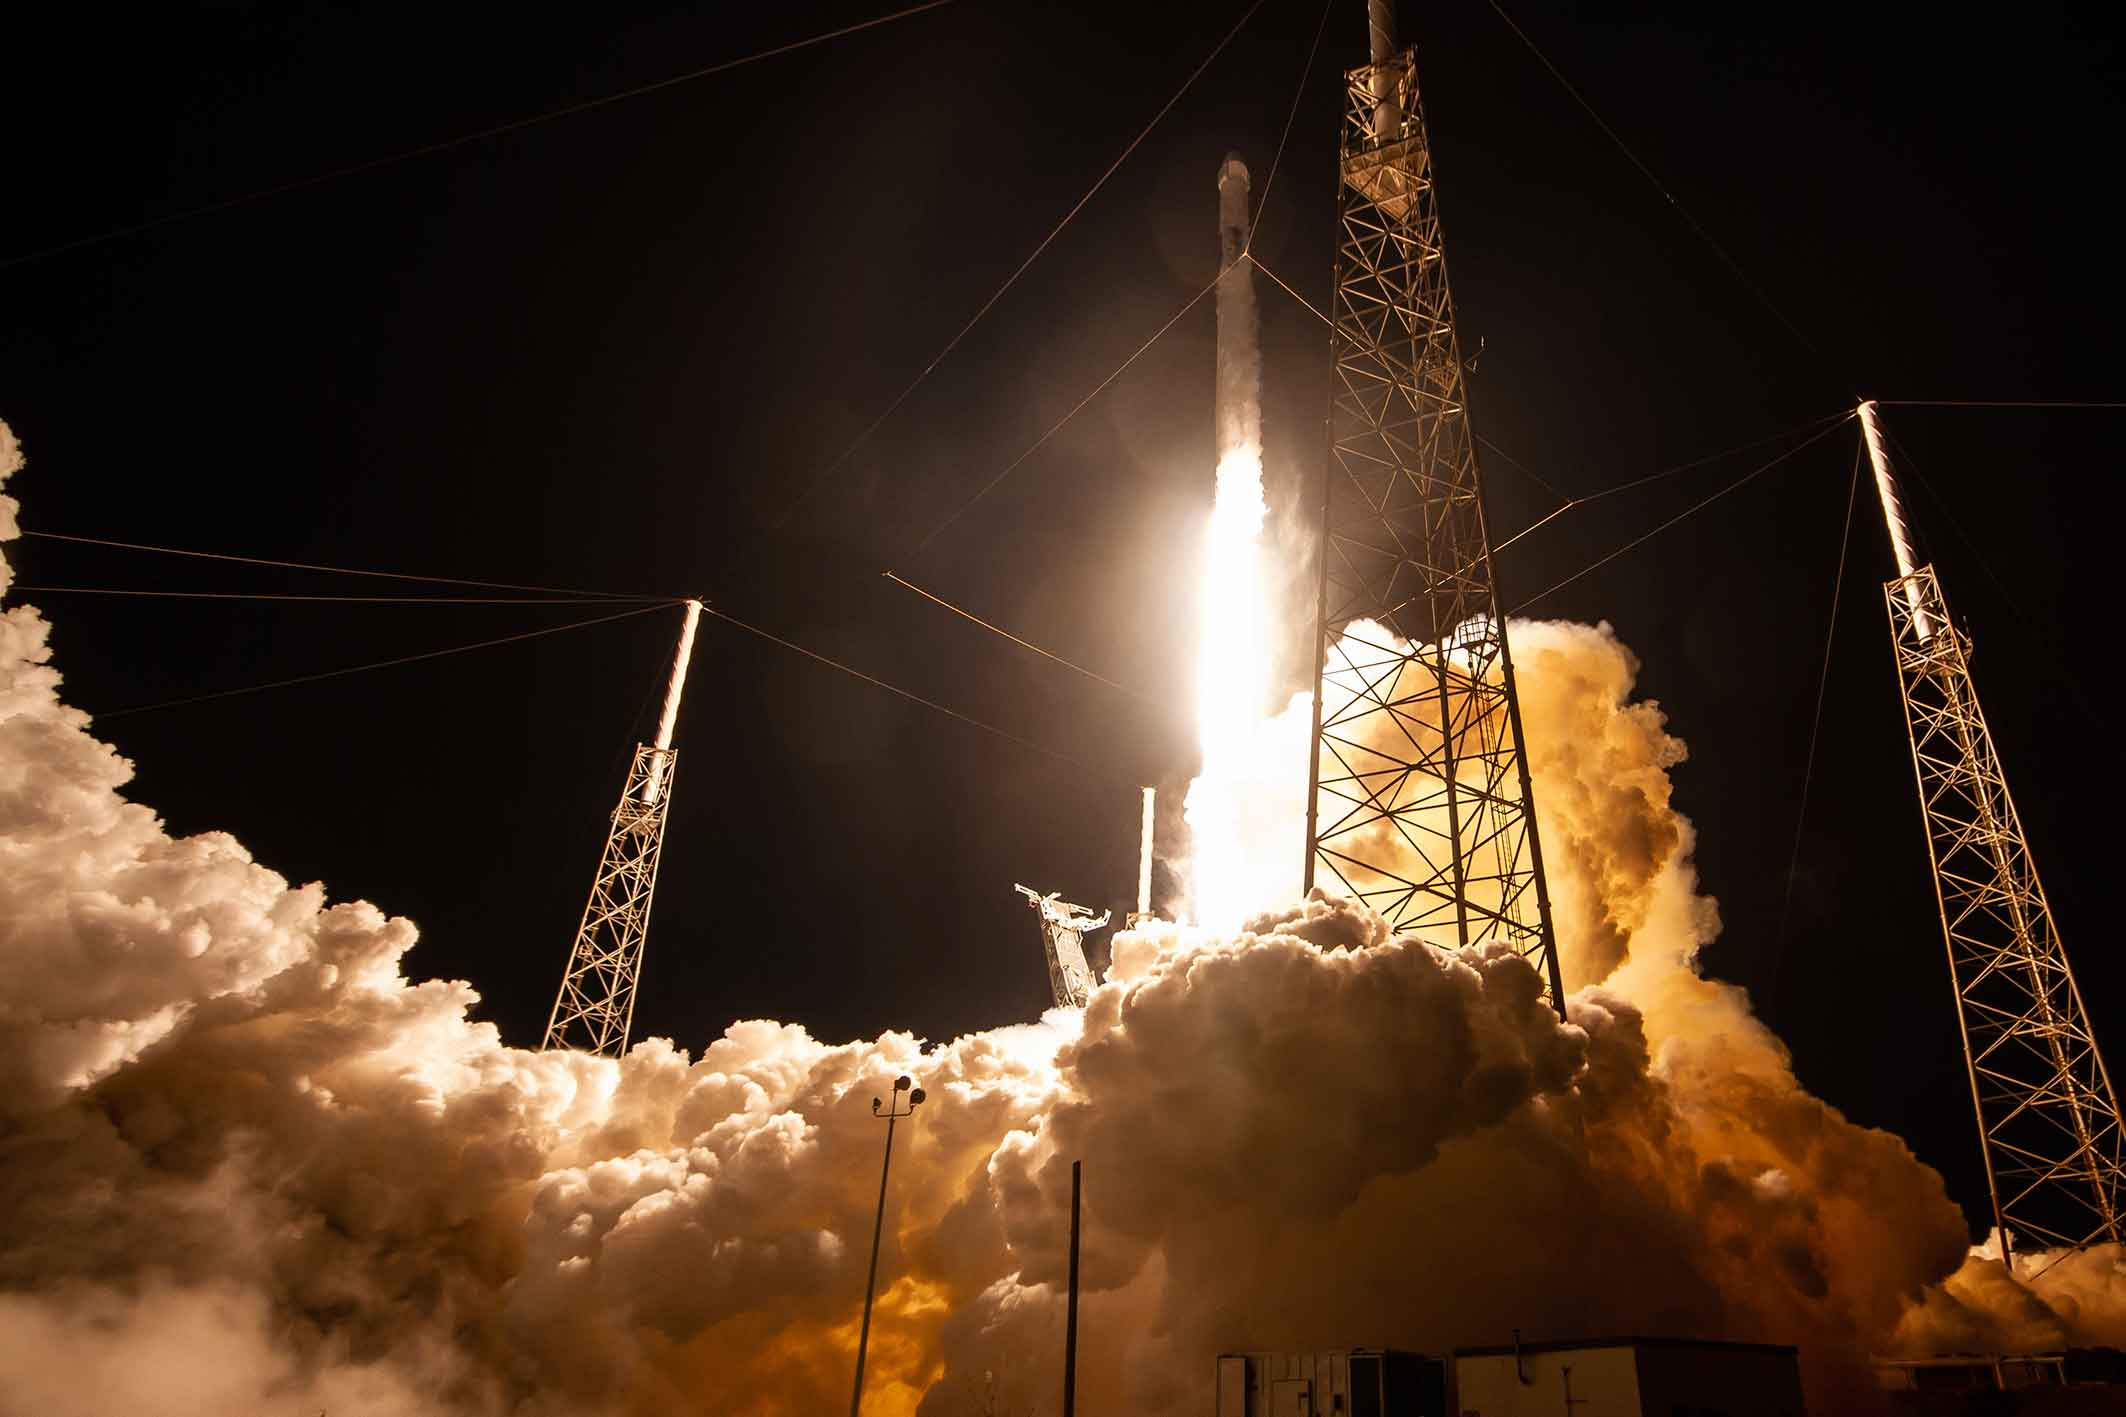 spacex dragon launch - HD2126×1417